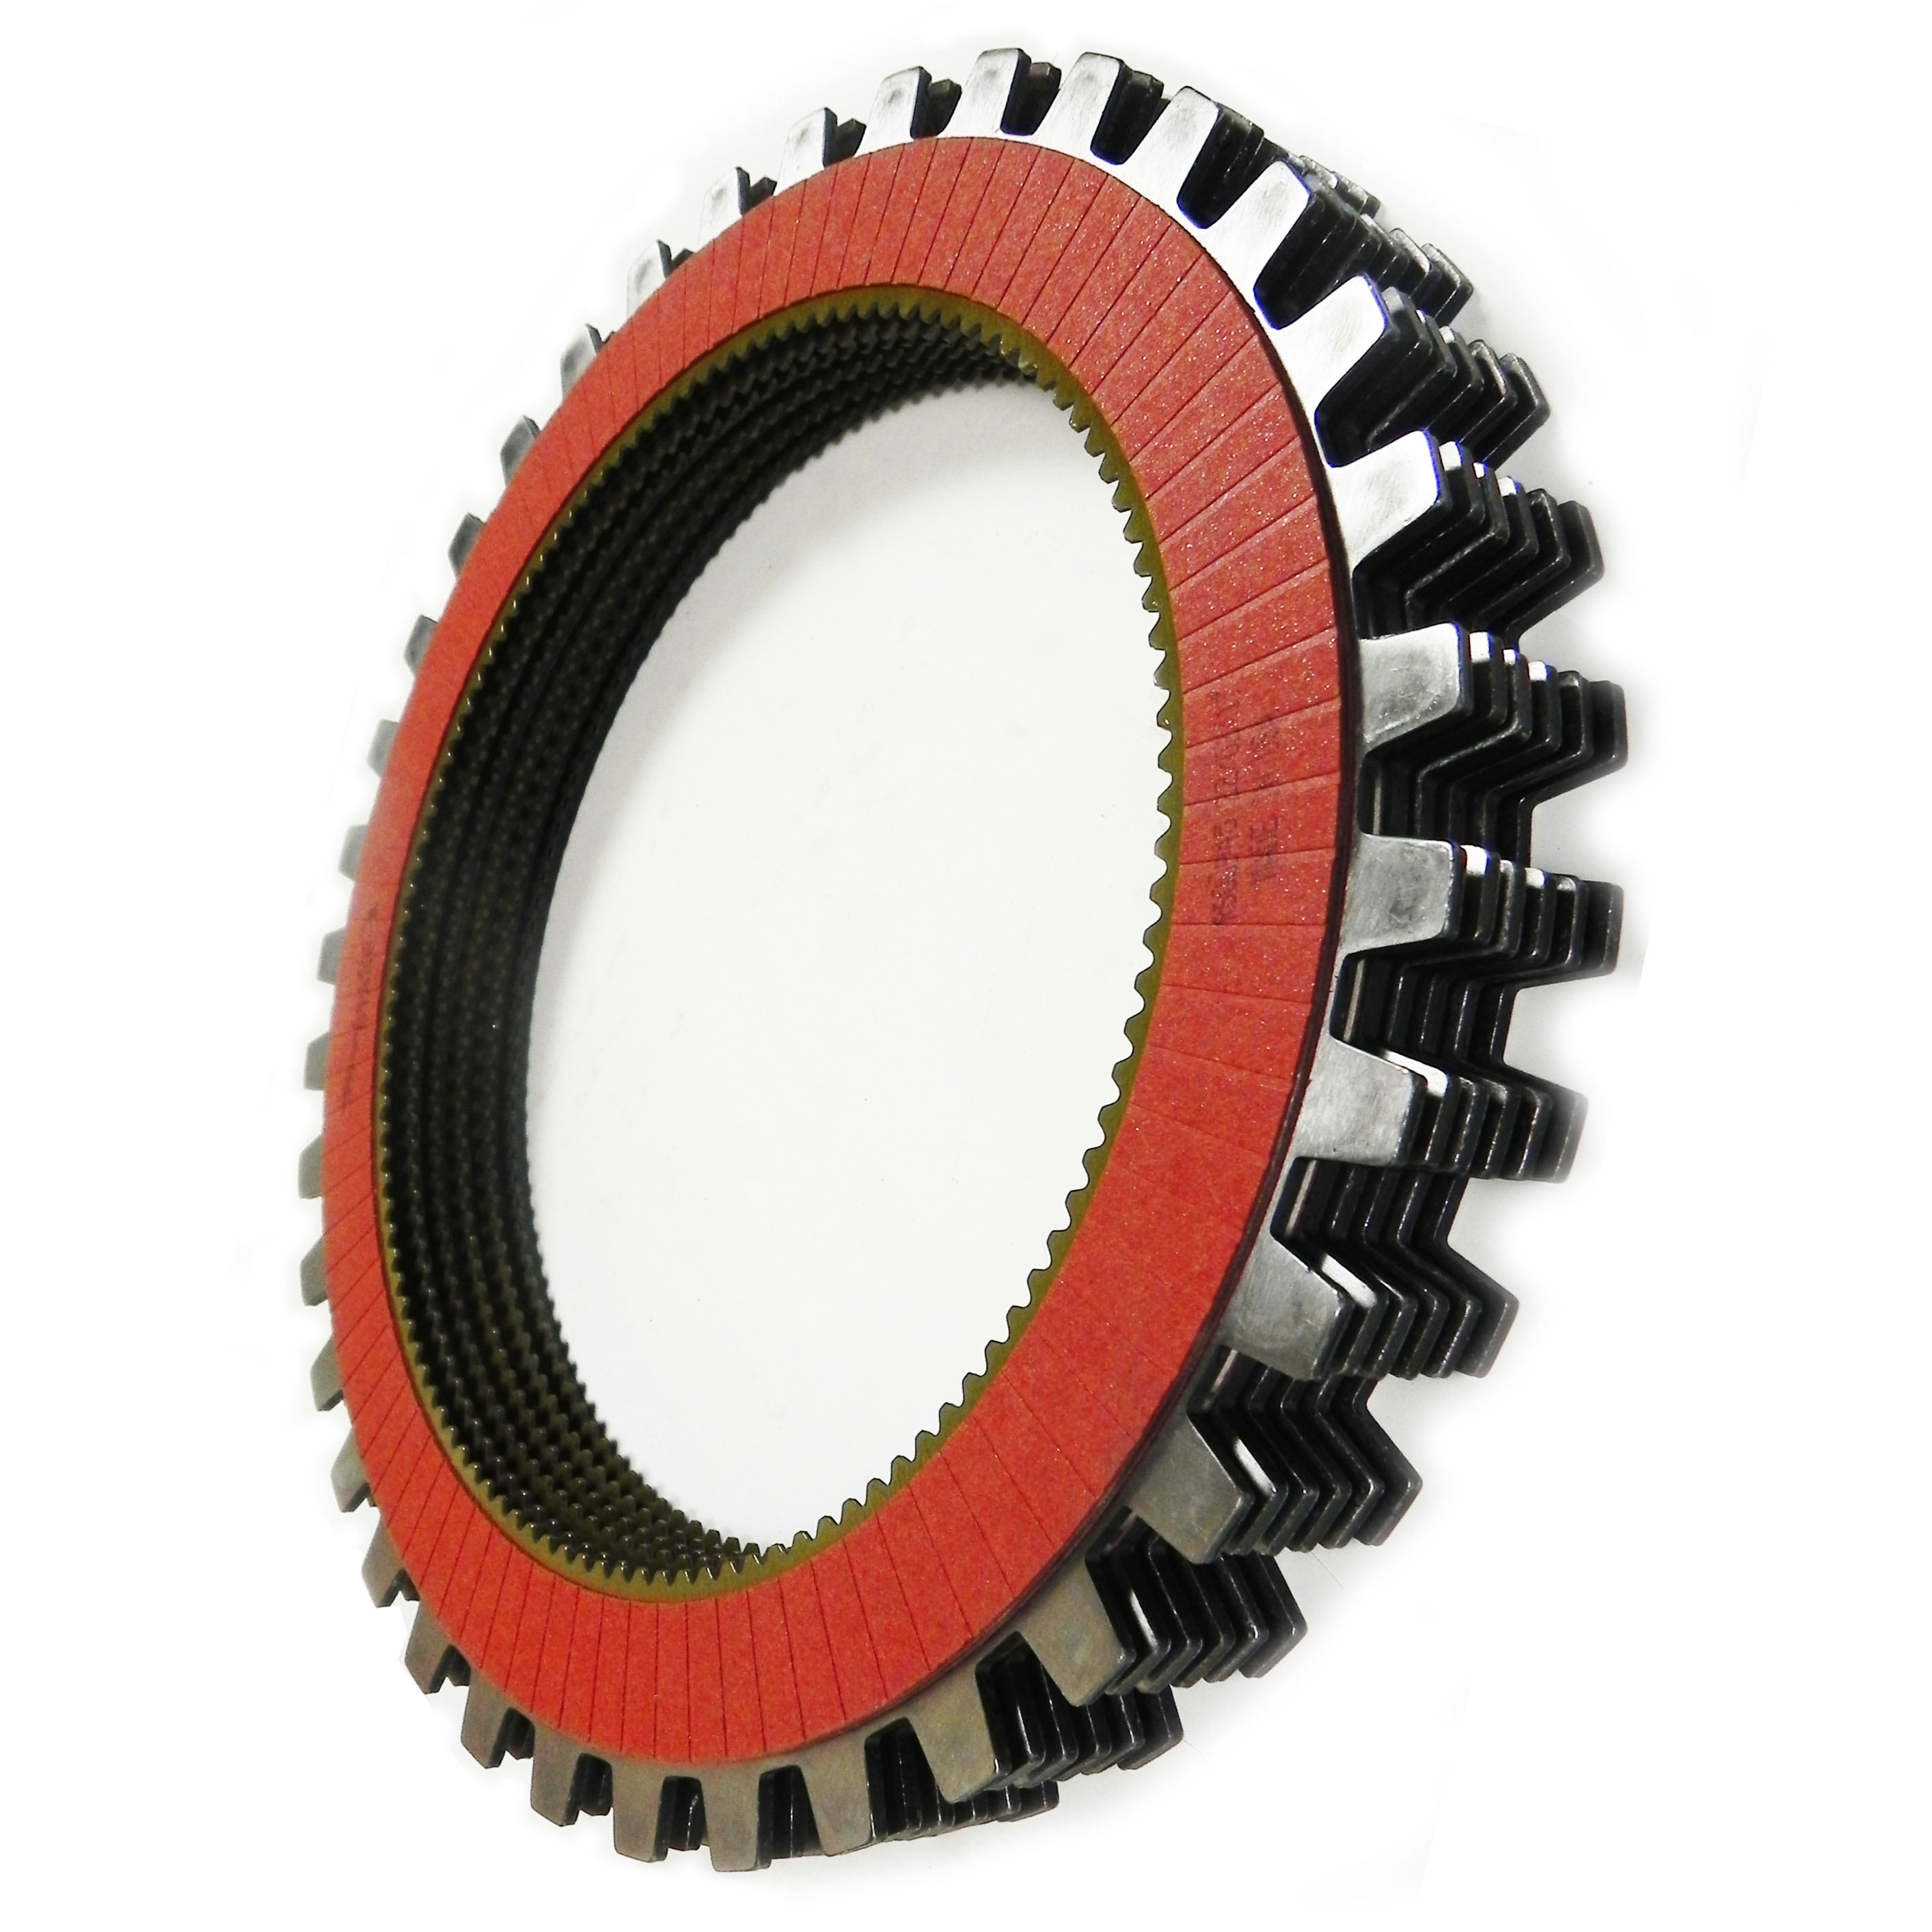 LT1000, LT2000, LT2400 C5 C5 Stage-1™ Friction Clutch Pack